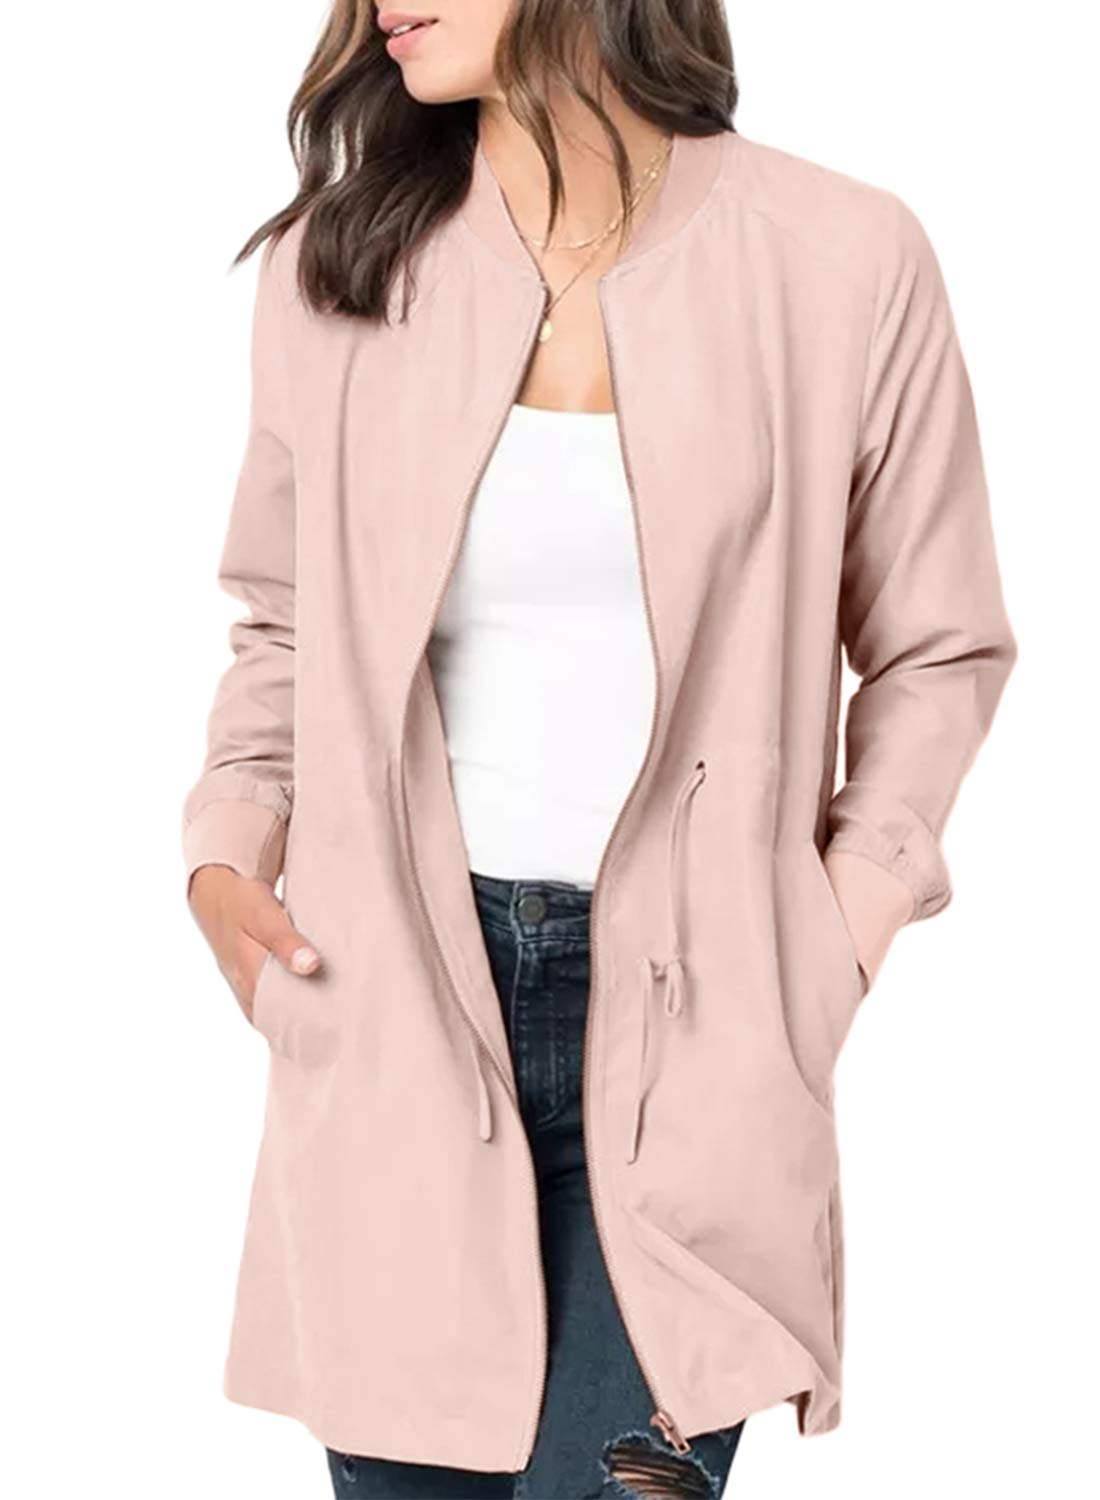 BLENCOT Womens Ladies Cute Autumn Thin Pink Coat Front Zipper Open Front Suede Jacket Comfy Basic Outerwear Windbreaker Large by BLENCOT